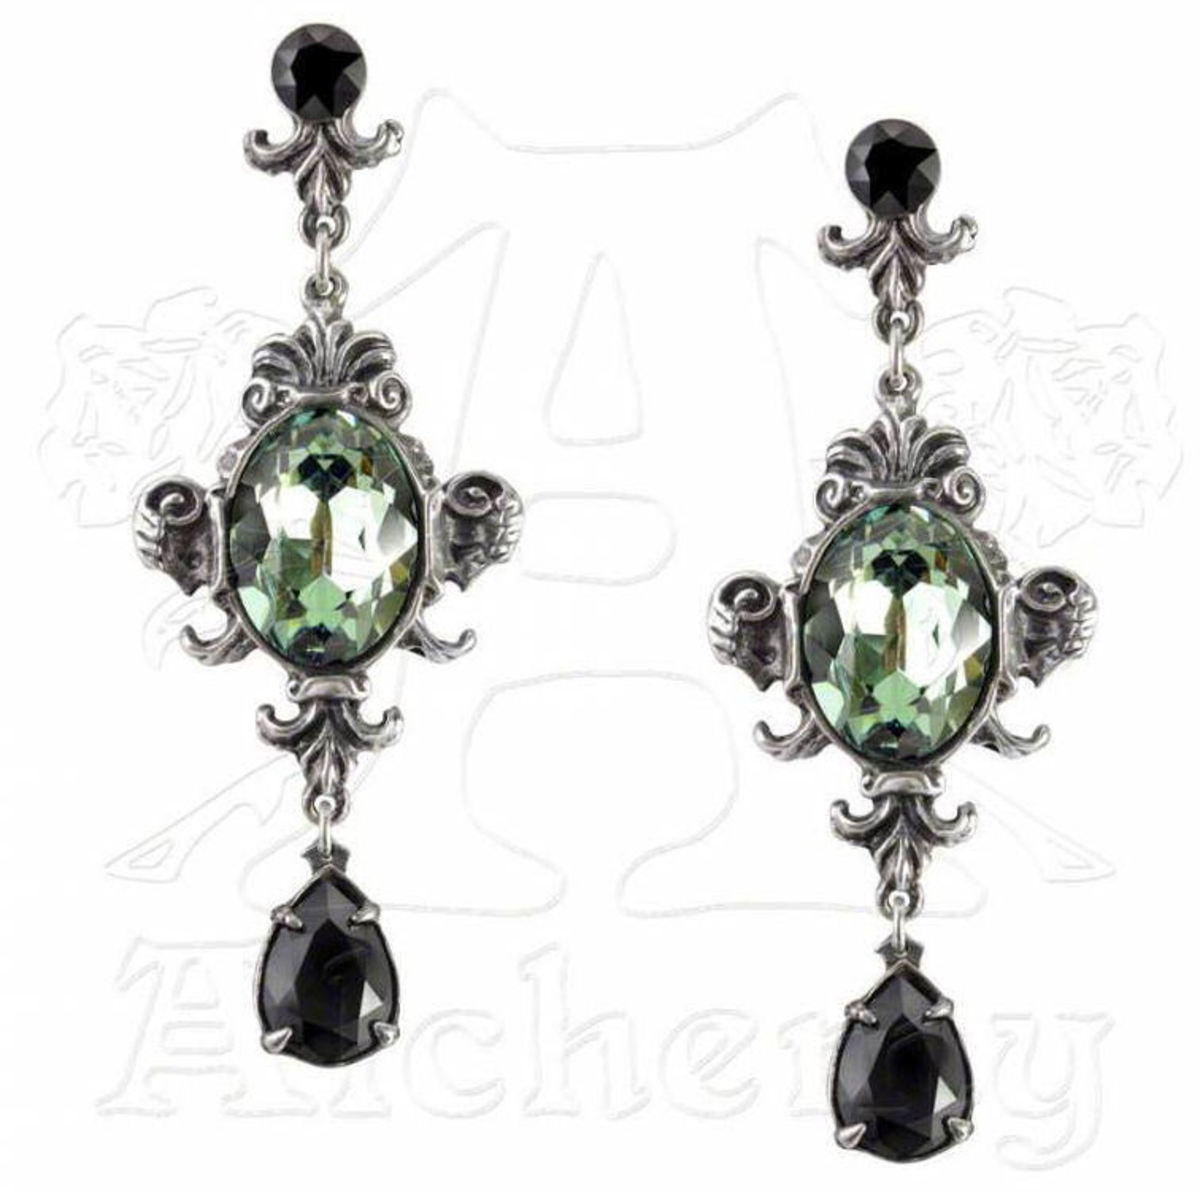 náušnice ALCHEMY GOTHIC - Queen of the Night - E273